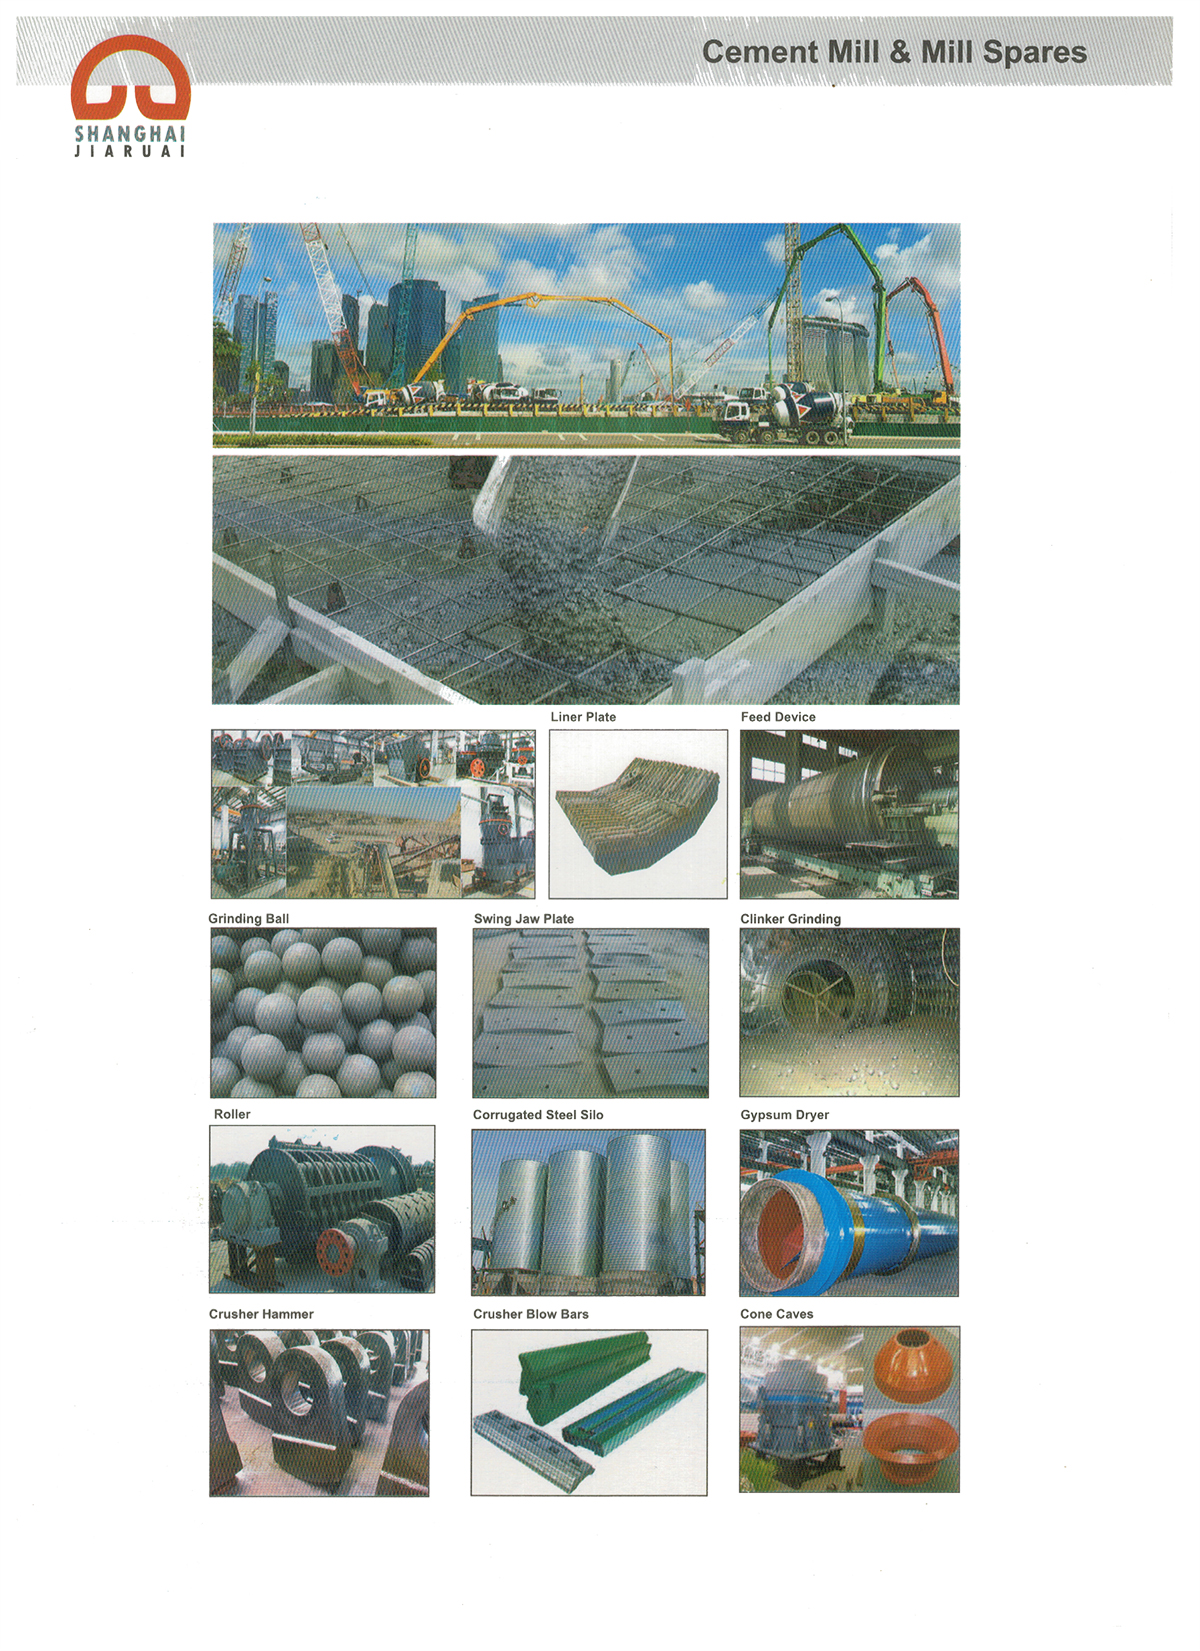 Cement Mill & Mill Spares